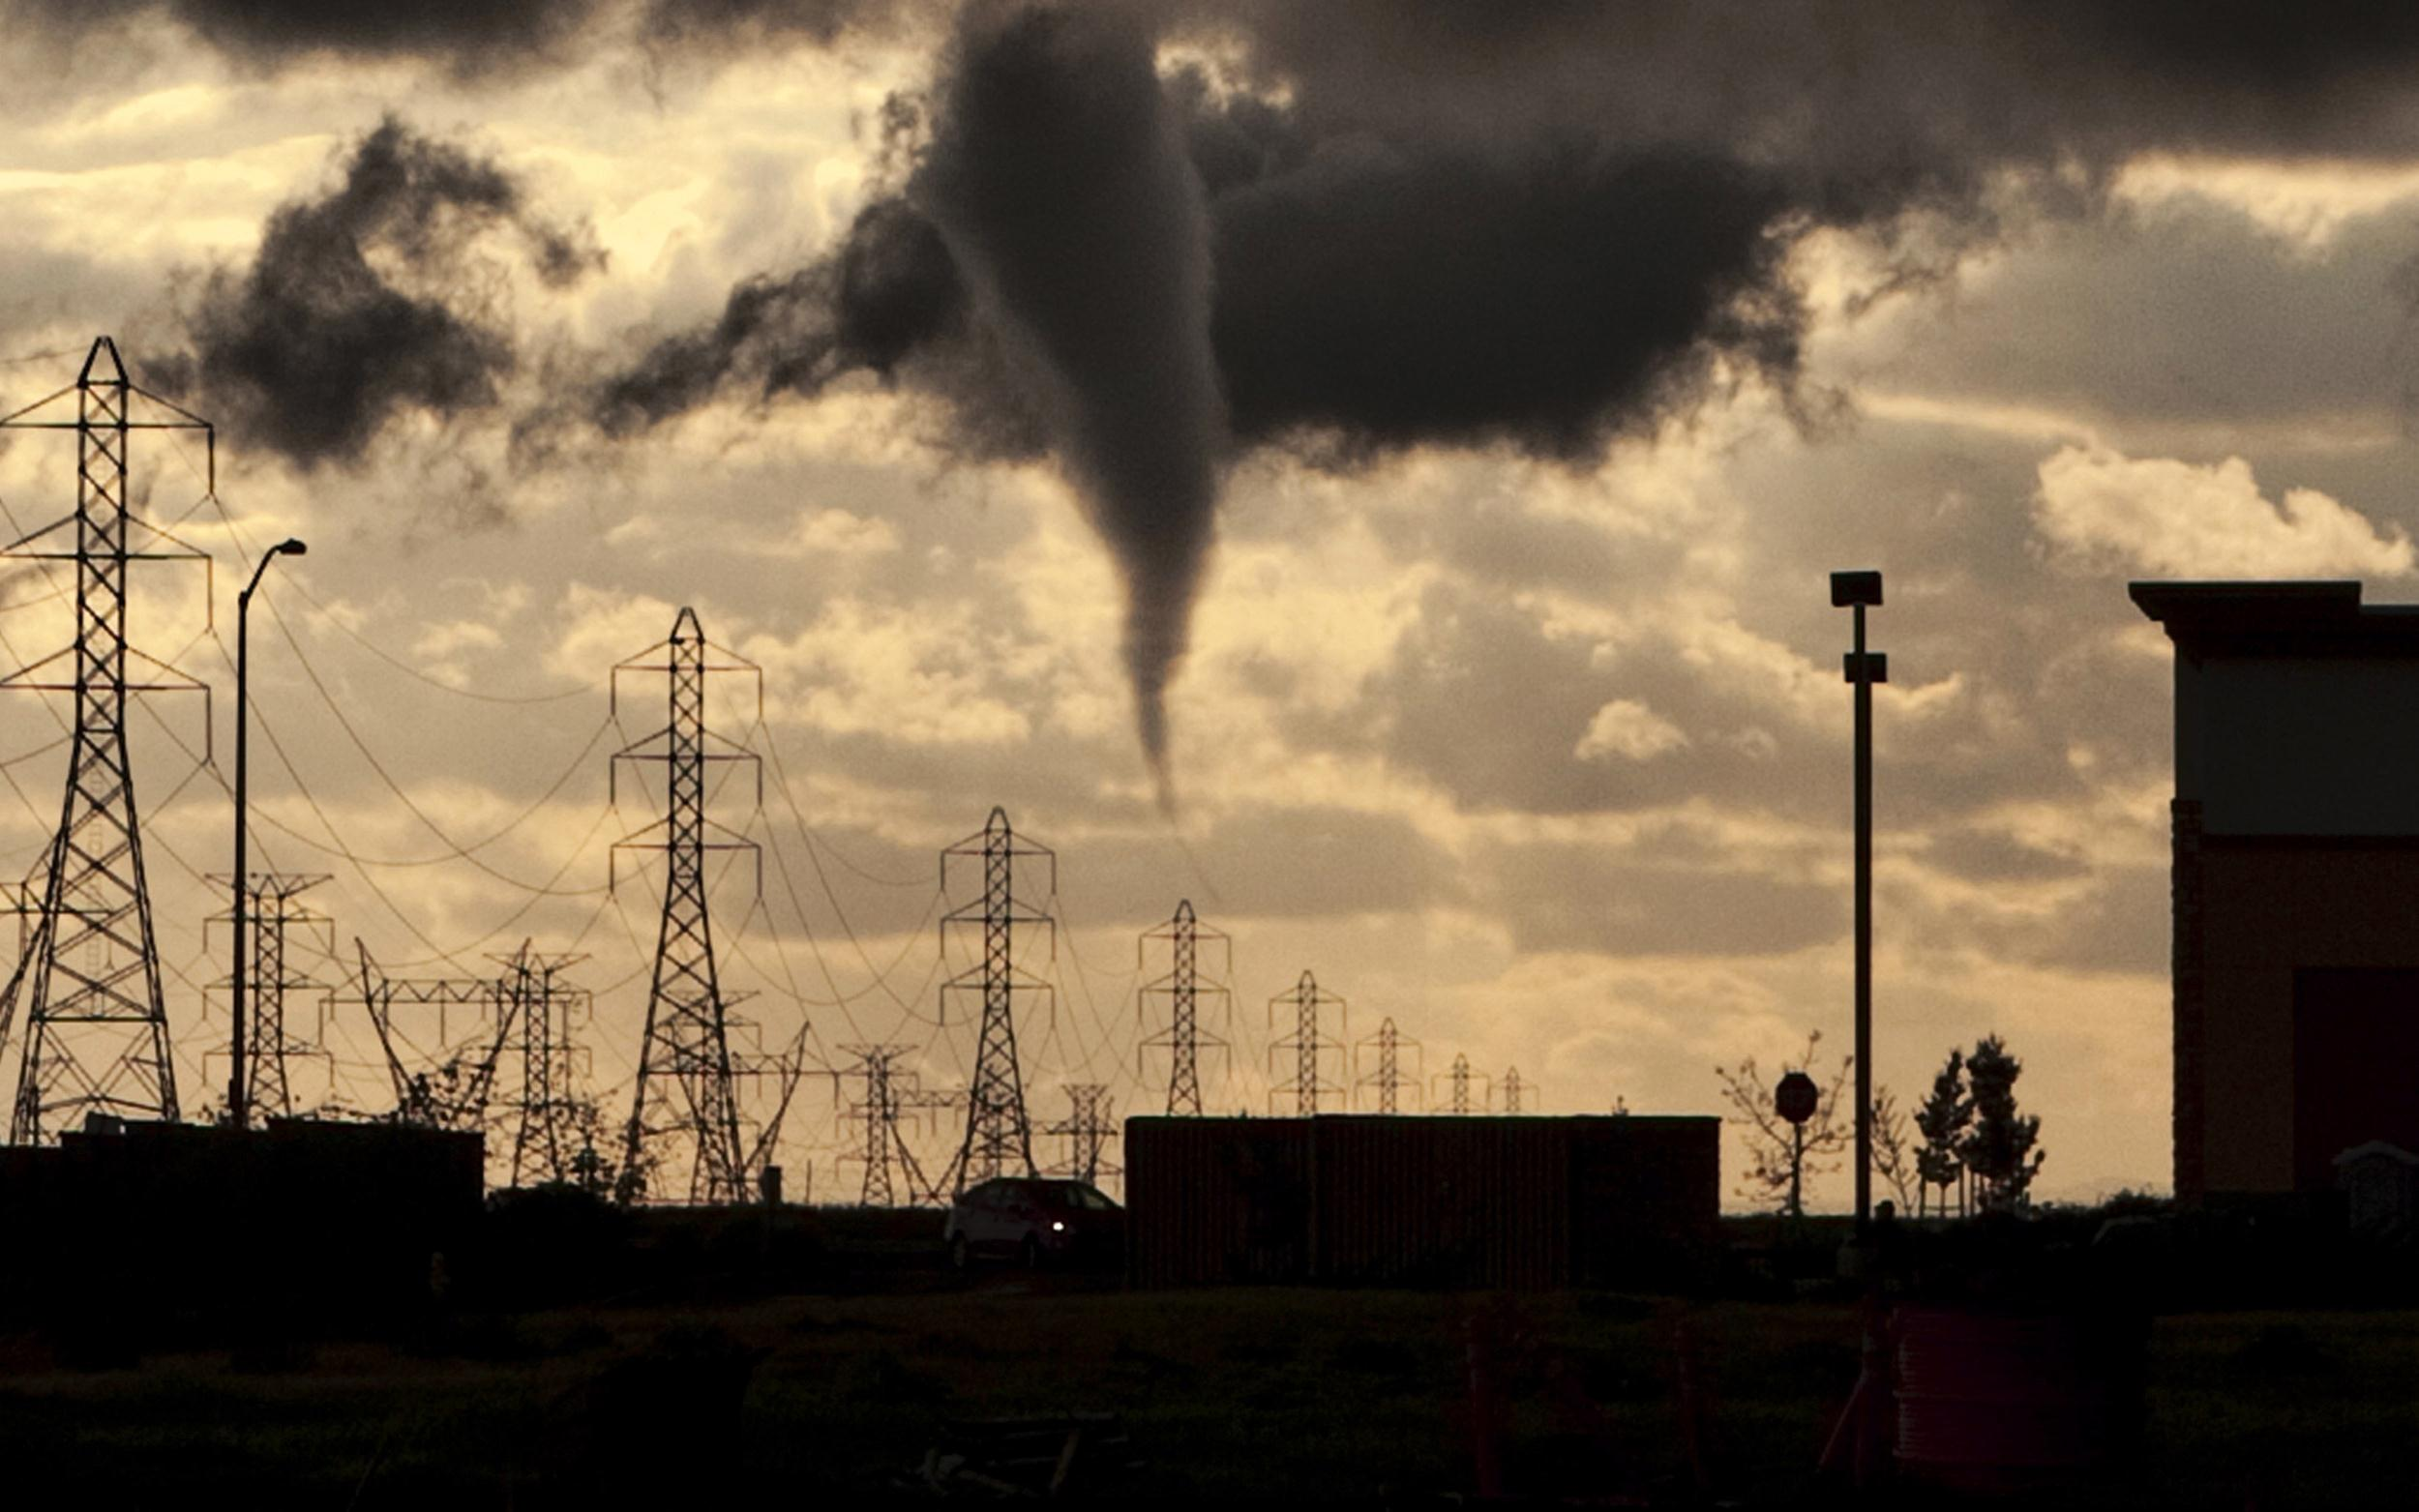 Image: A tornado funnel approaches a residential area on the west side of Roseville